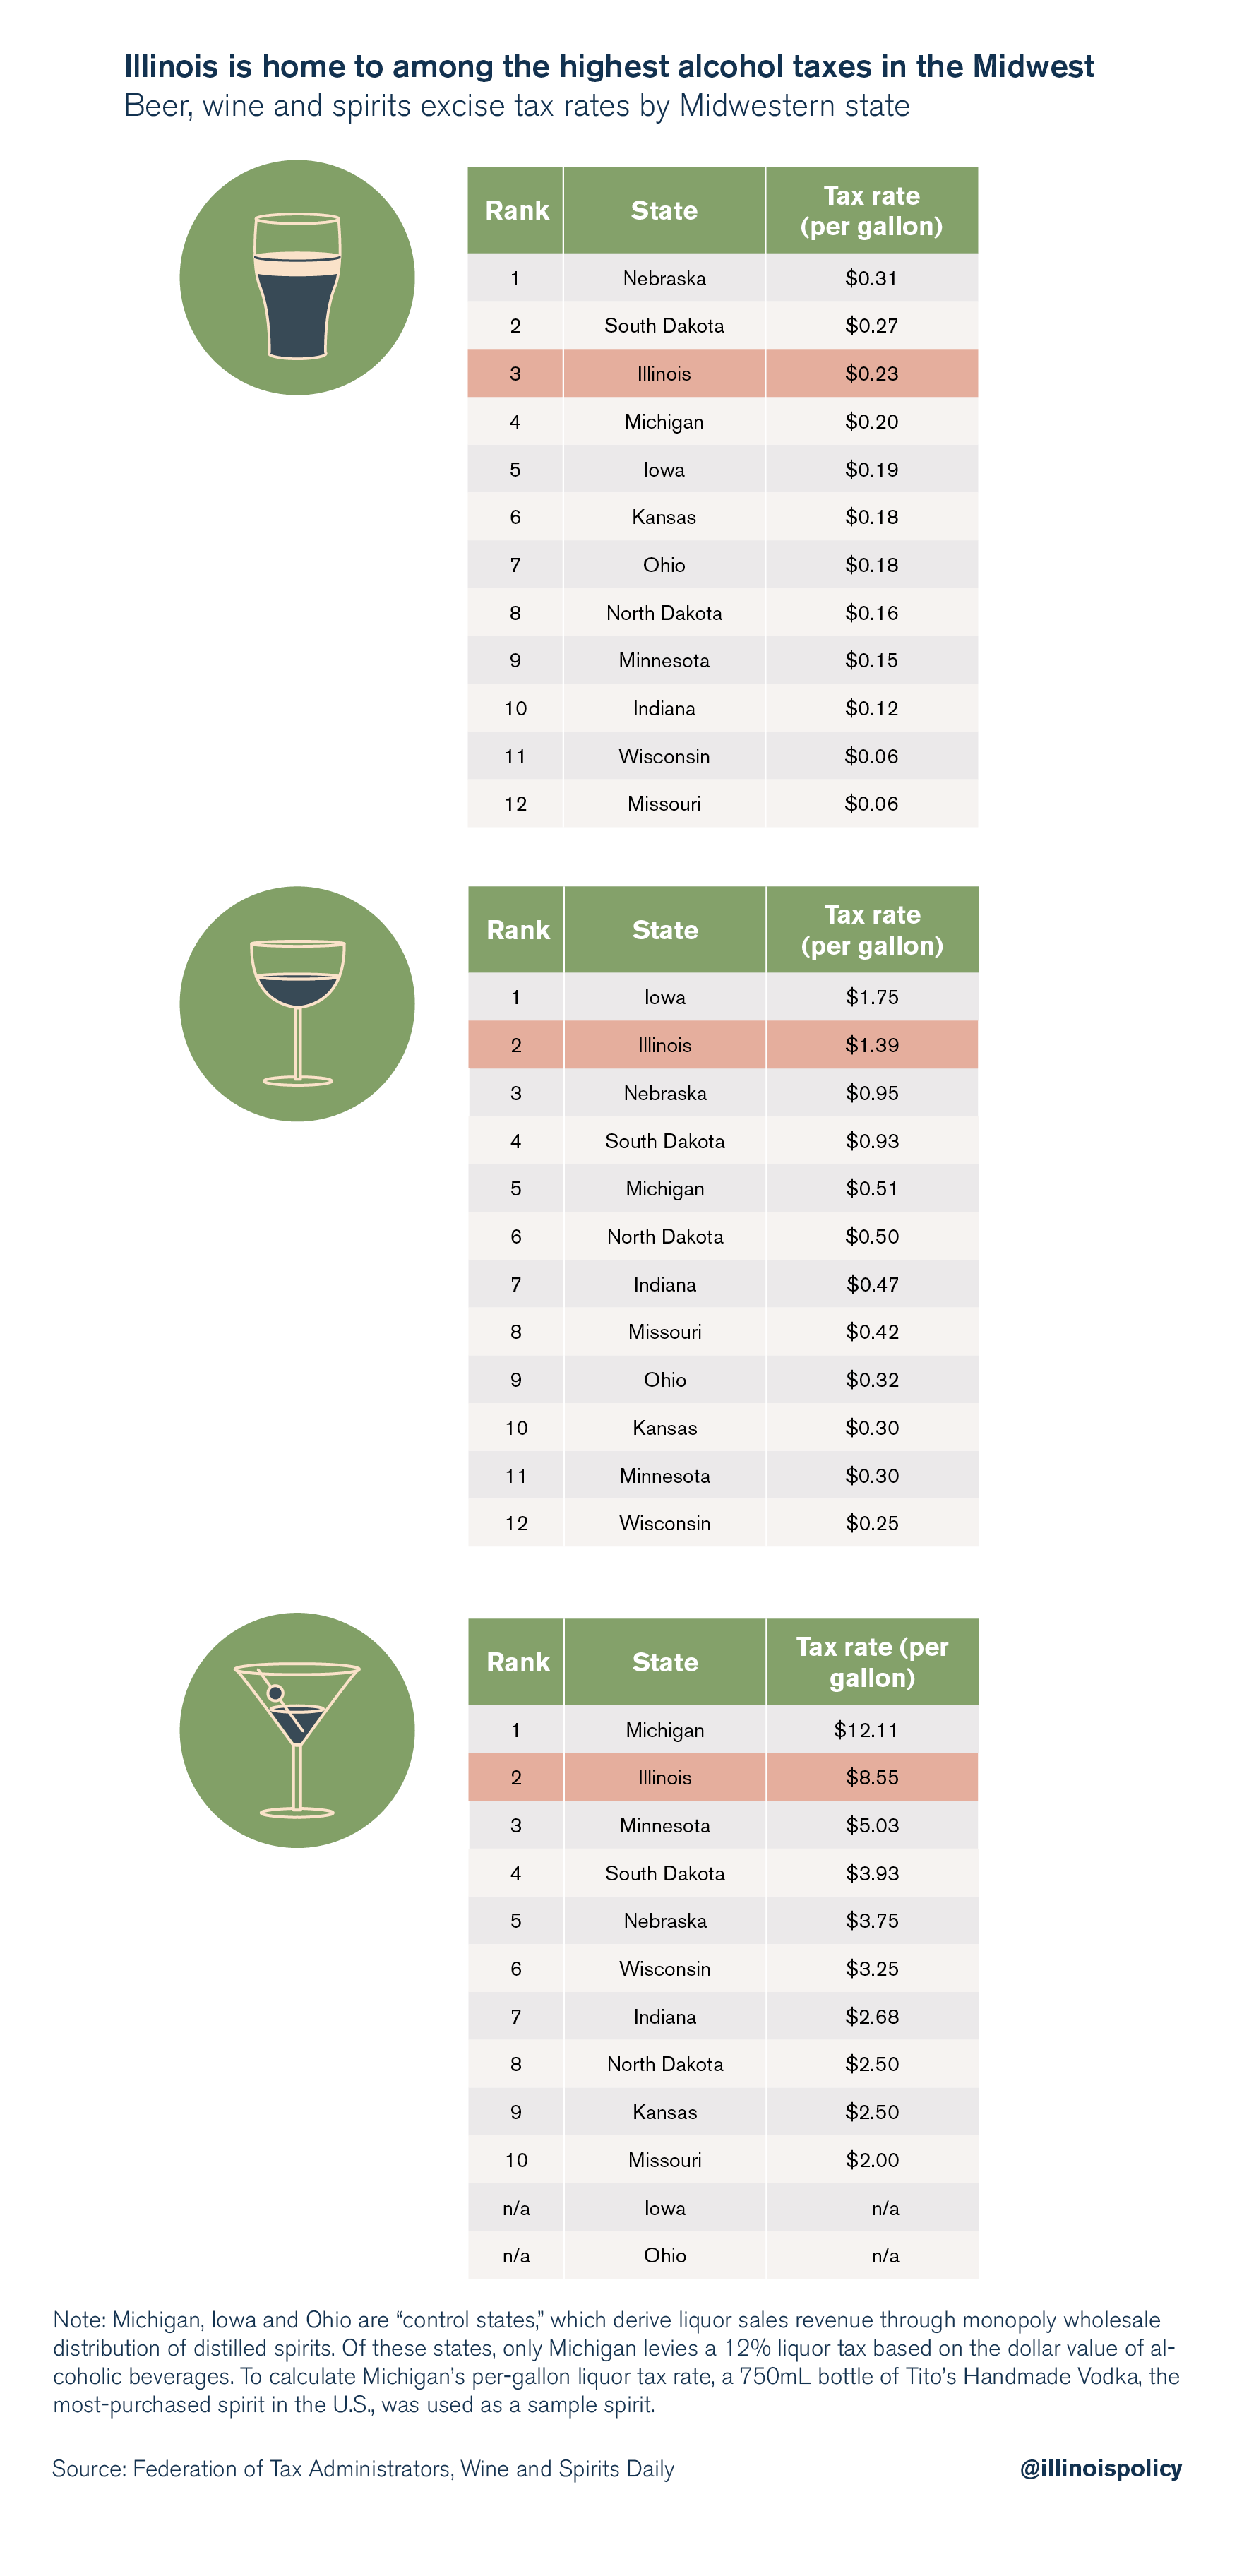 Illinois is home to among the highest alcohol taxes in the Midwest